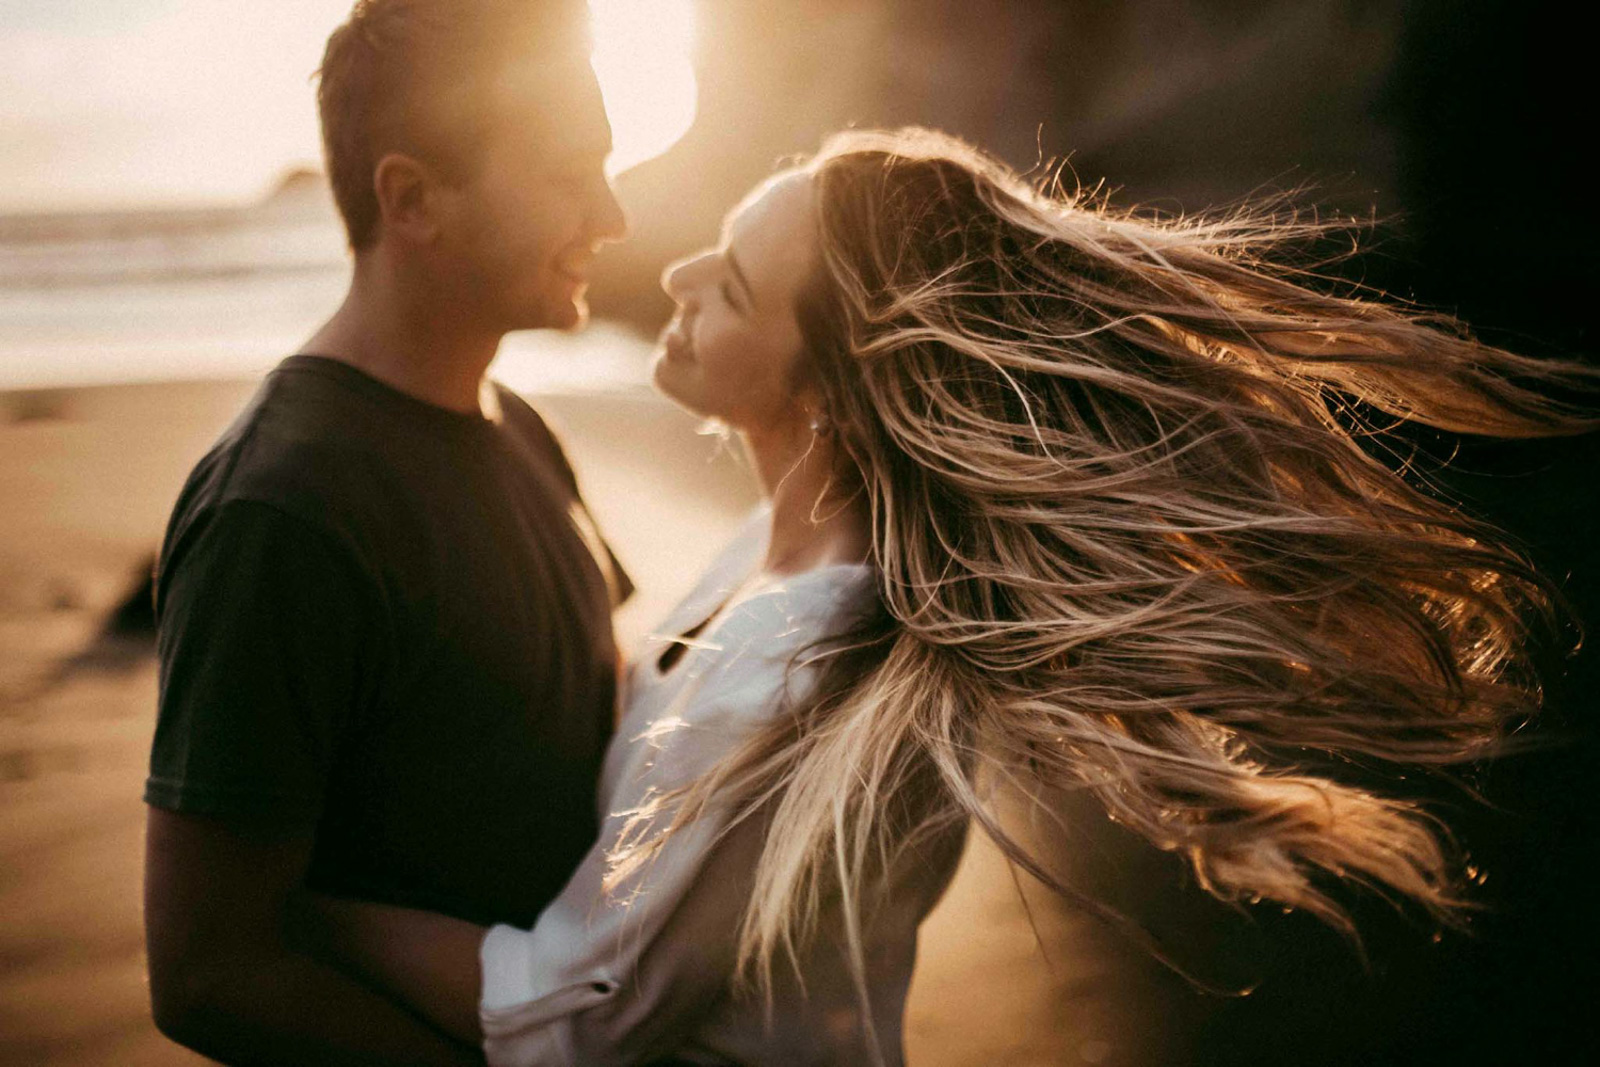 how-to-speed-up-workflow-man and woman on beach hair flowing golden hourby-Olga Levien-3